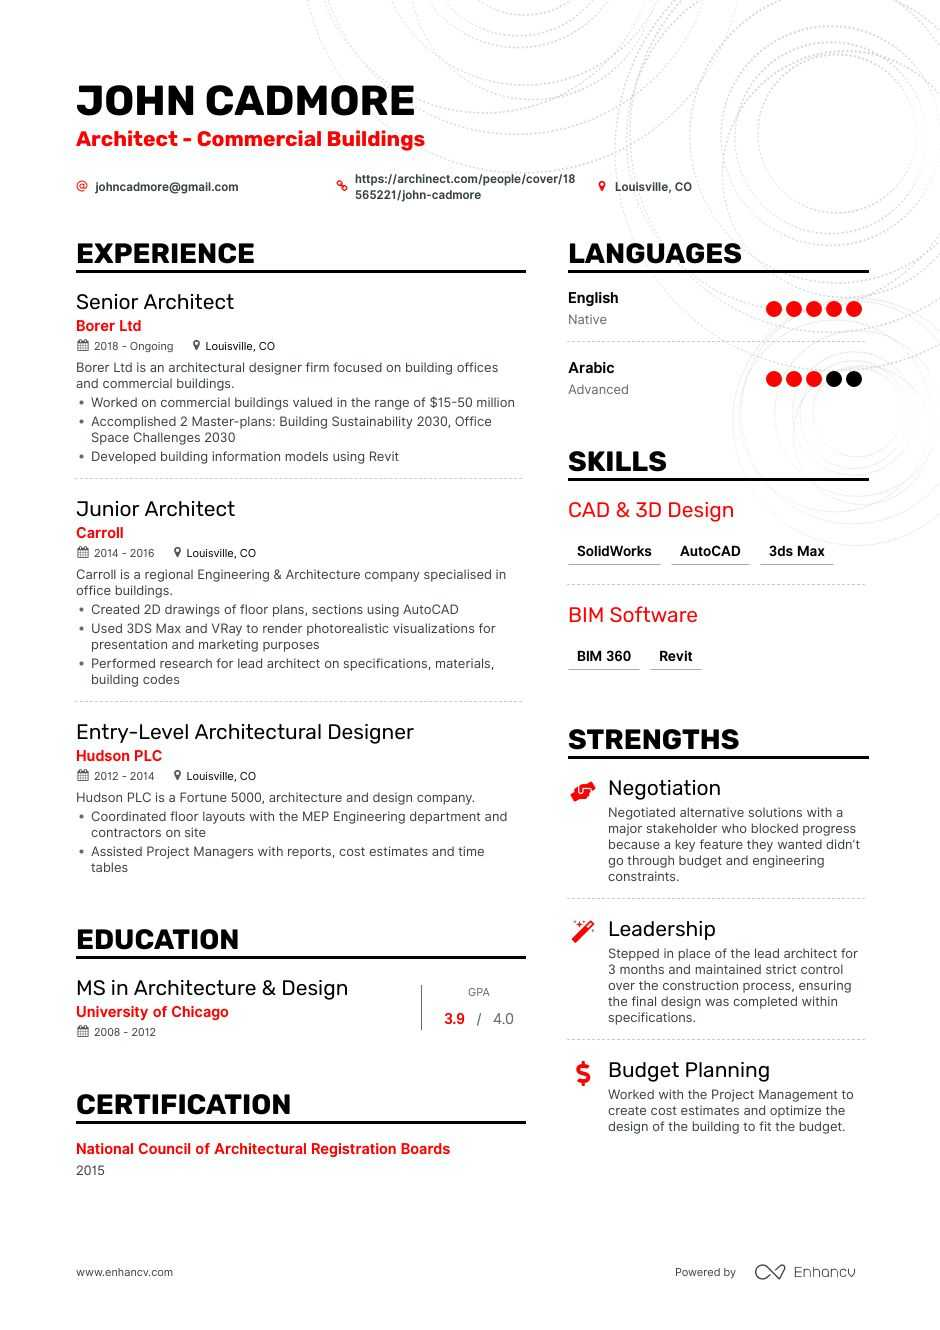 top architect resume examples samples for enhancv principal sre example housing inspector Resume Principal Architect Resume